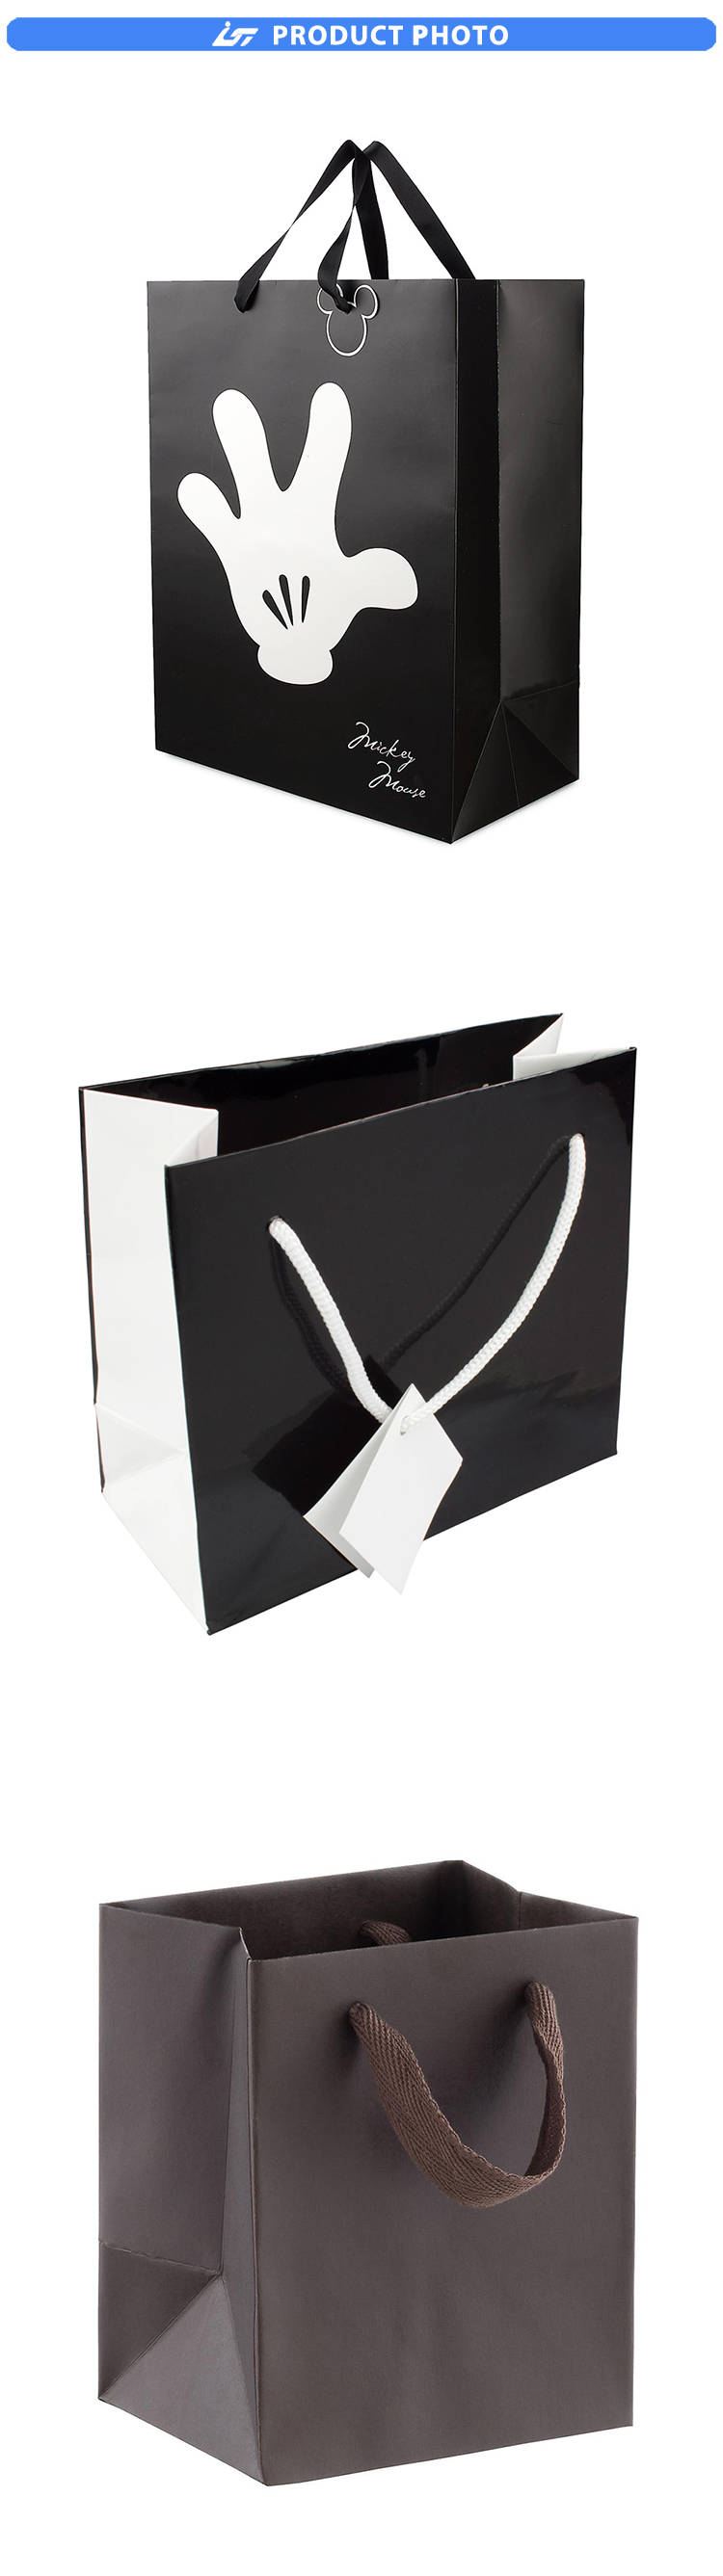 paper bag with logo print